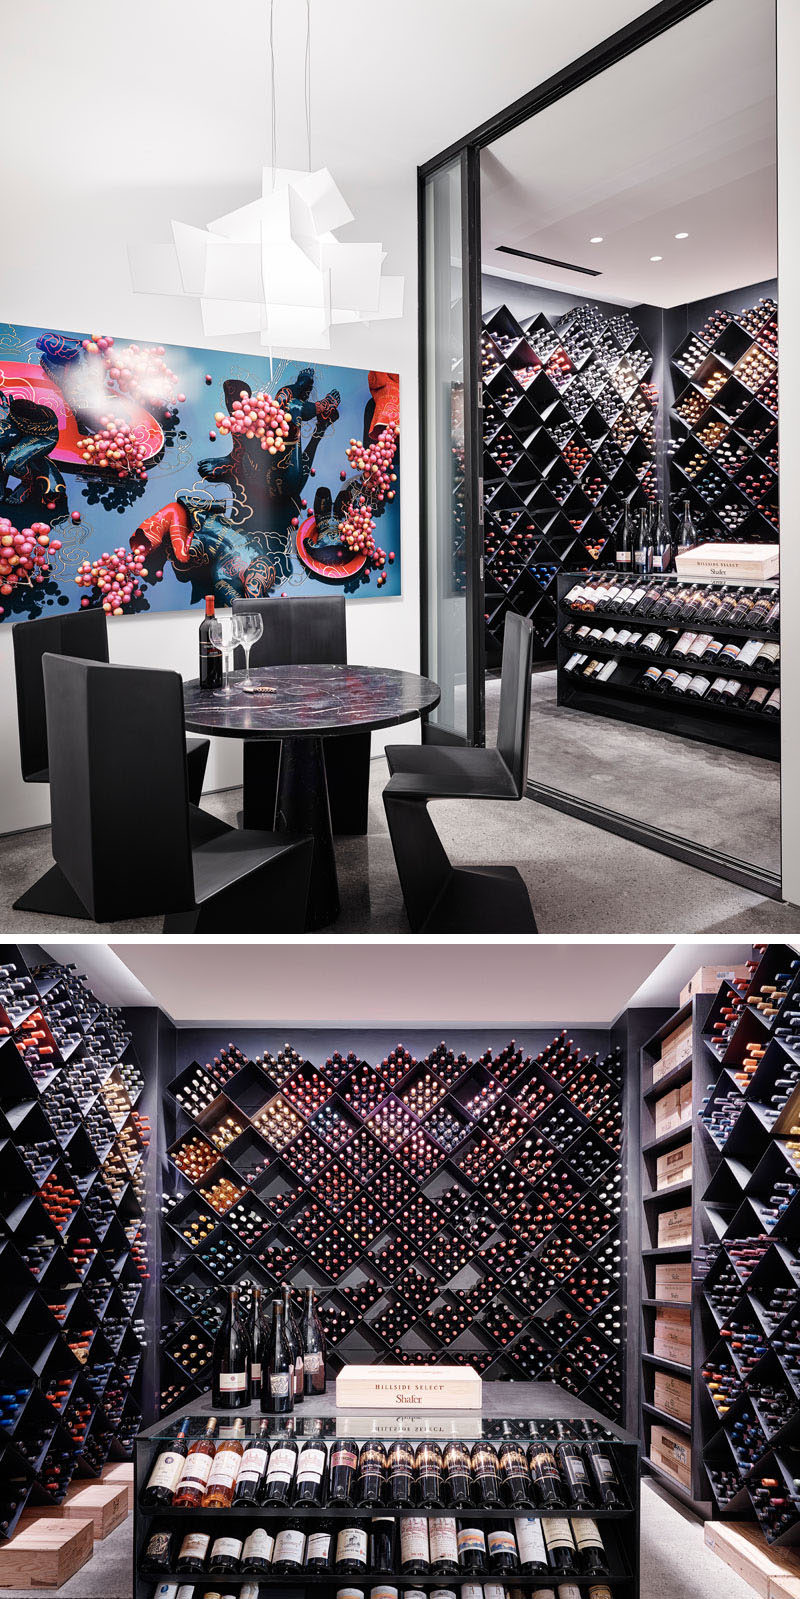 This modern wine cellar has a sliding glass door that opens to an extensive wine collection that's housed within diamond-shaped shelving, while an island provides a place to display selected bottles. #WineCellar #ModernWineCellar #WineStorage